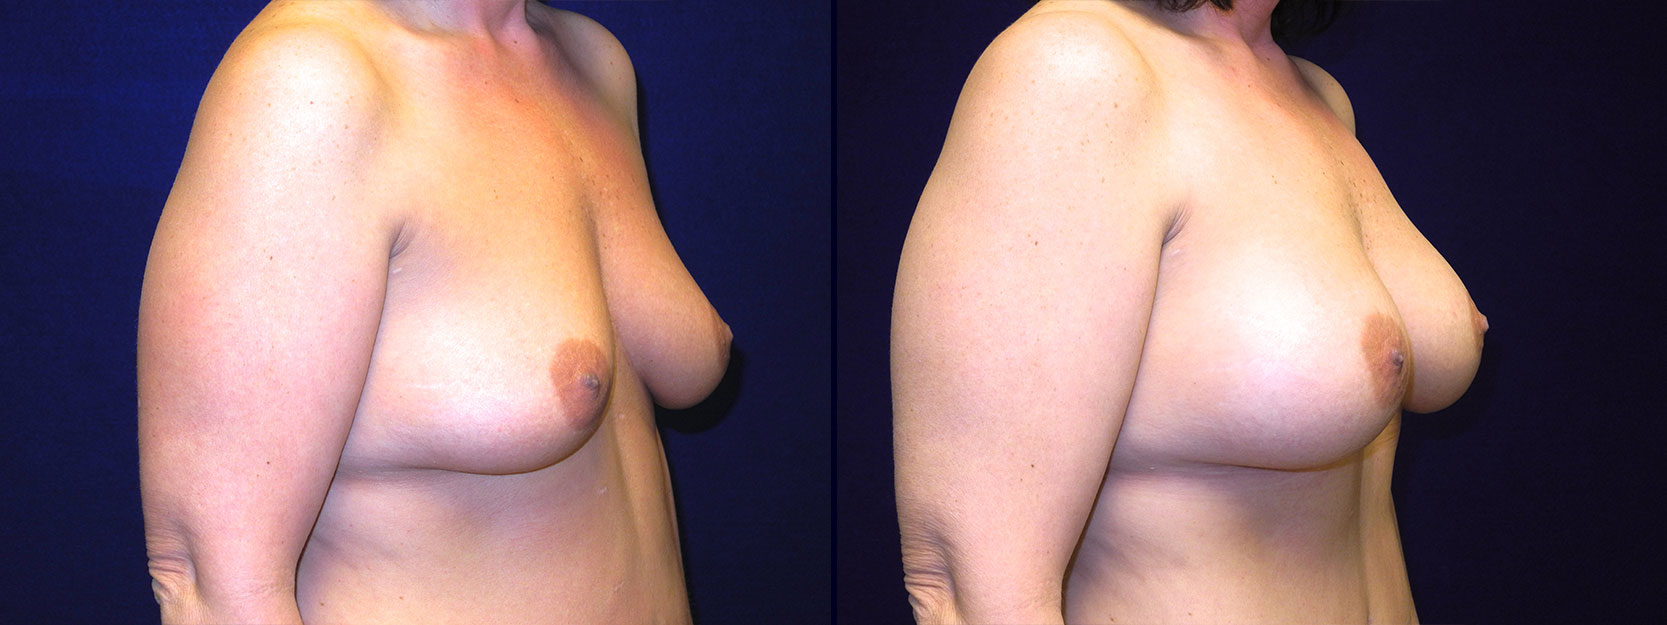 Right 3/4 View - Breast Augmentation After Weight Loss